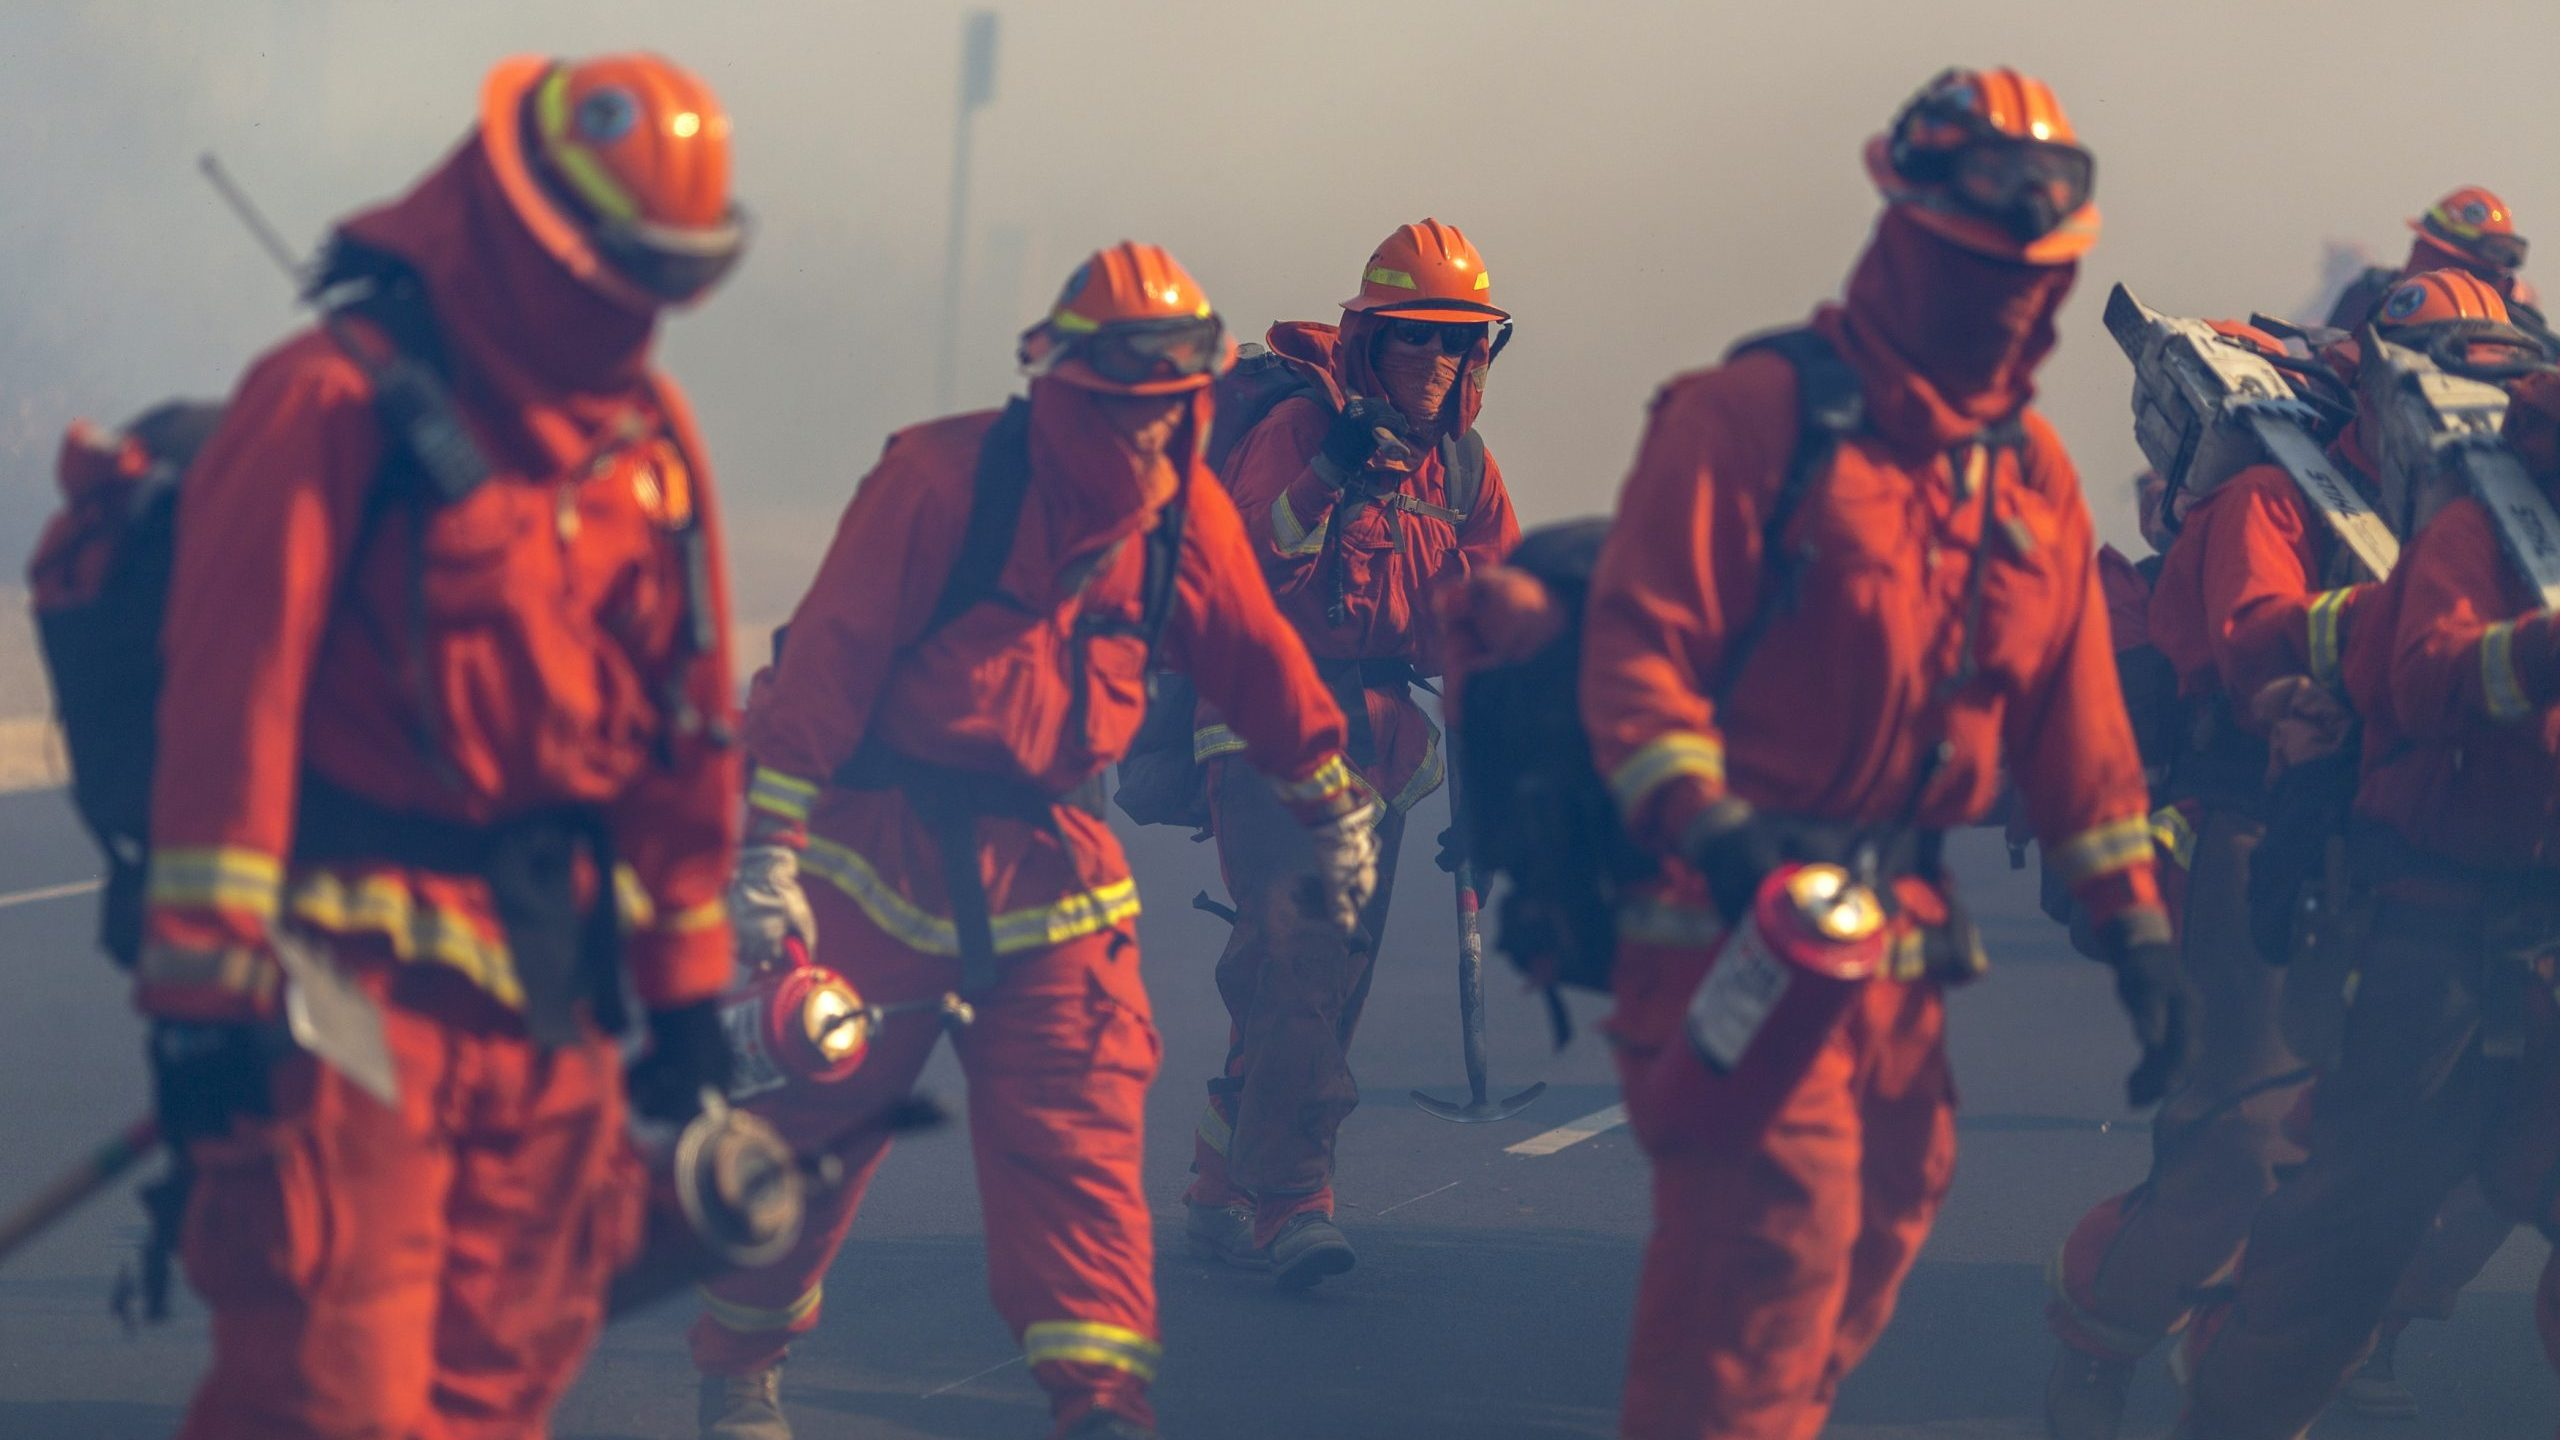 Inmate firefighters from Oak Glen Conservation Camp near Yucaipa, California fight the Easy Fire on Oct. 30, 2019, near Simi Valley. (Credit: David McNew/Getty Images)